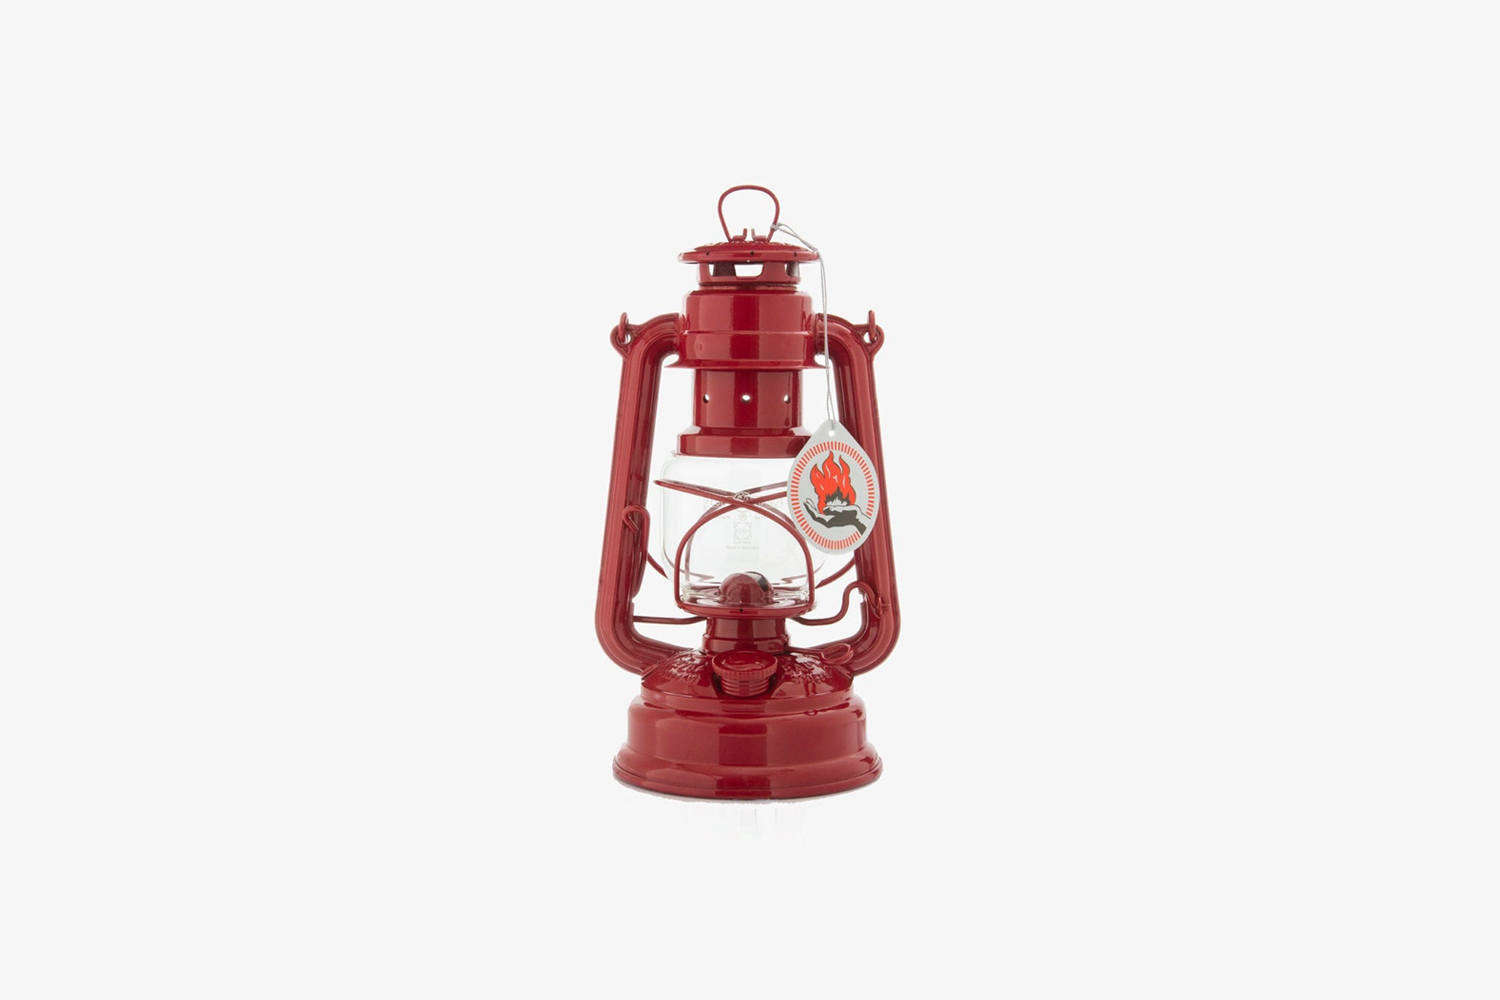 Steal This Look A Stylish Camp Kitchen in a Plywood Summer Cabin The Feuerhand Storm Lantern Ruby Red is available at Home Camp in Australia for \$69.